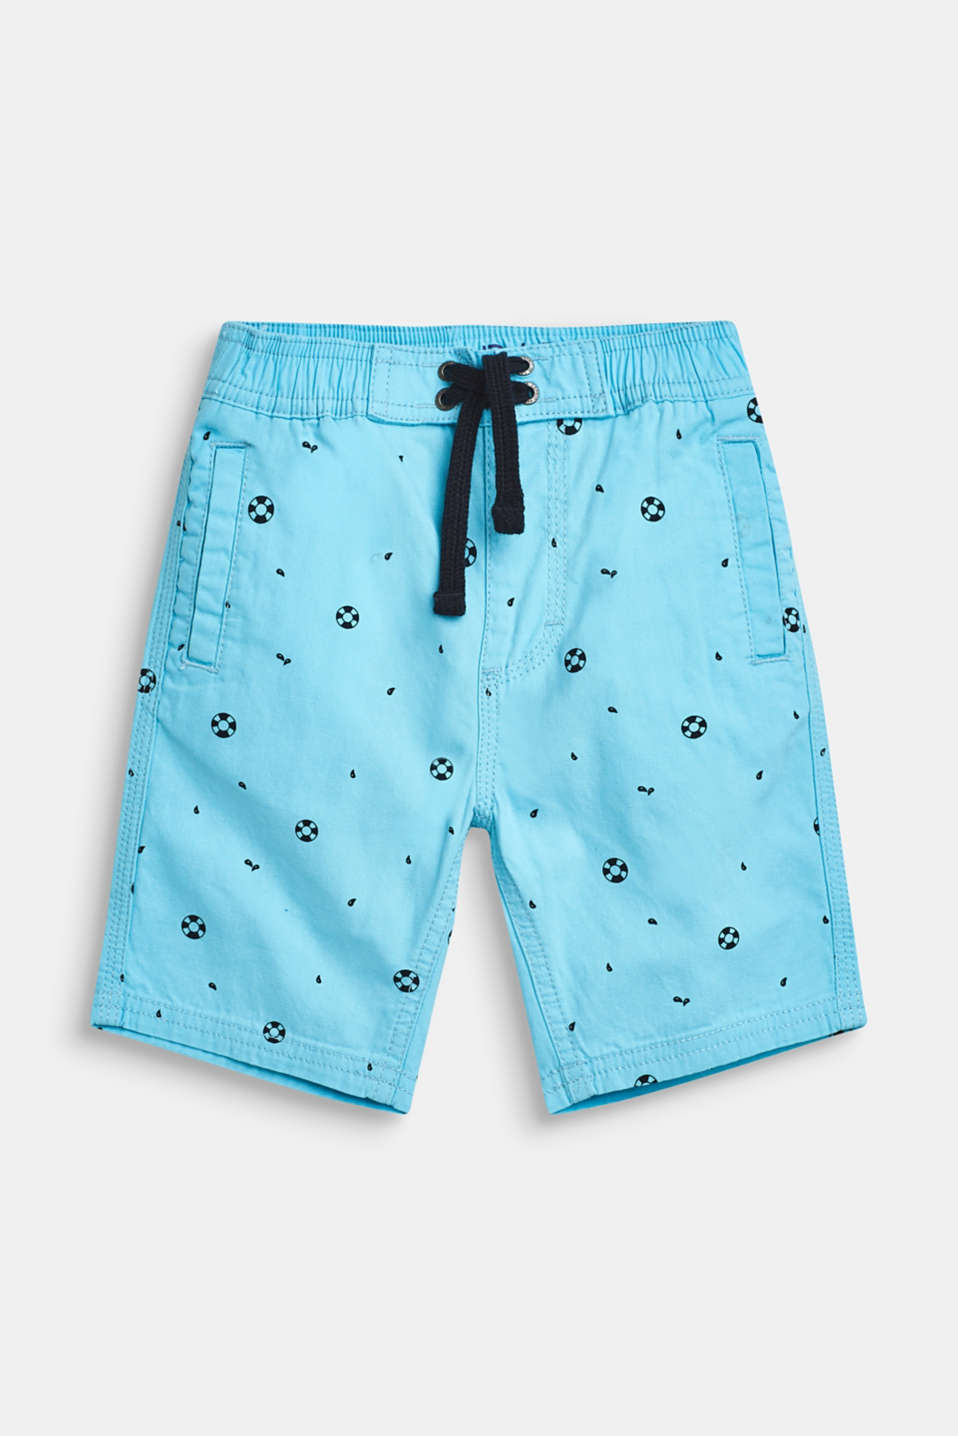 Nautical print Bermudas, 100% cotton, AQUARIUS, detail image number 0